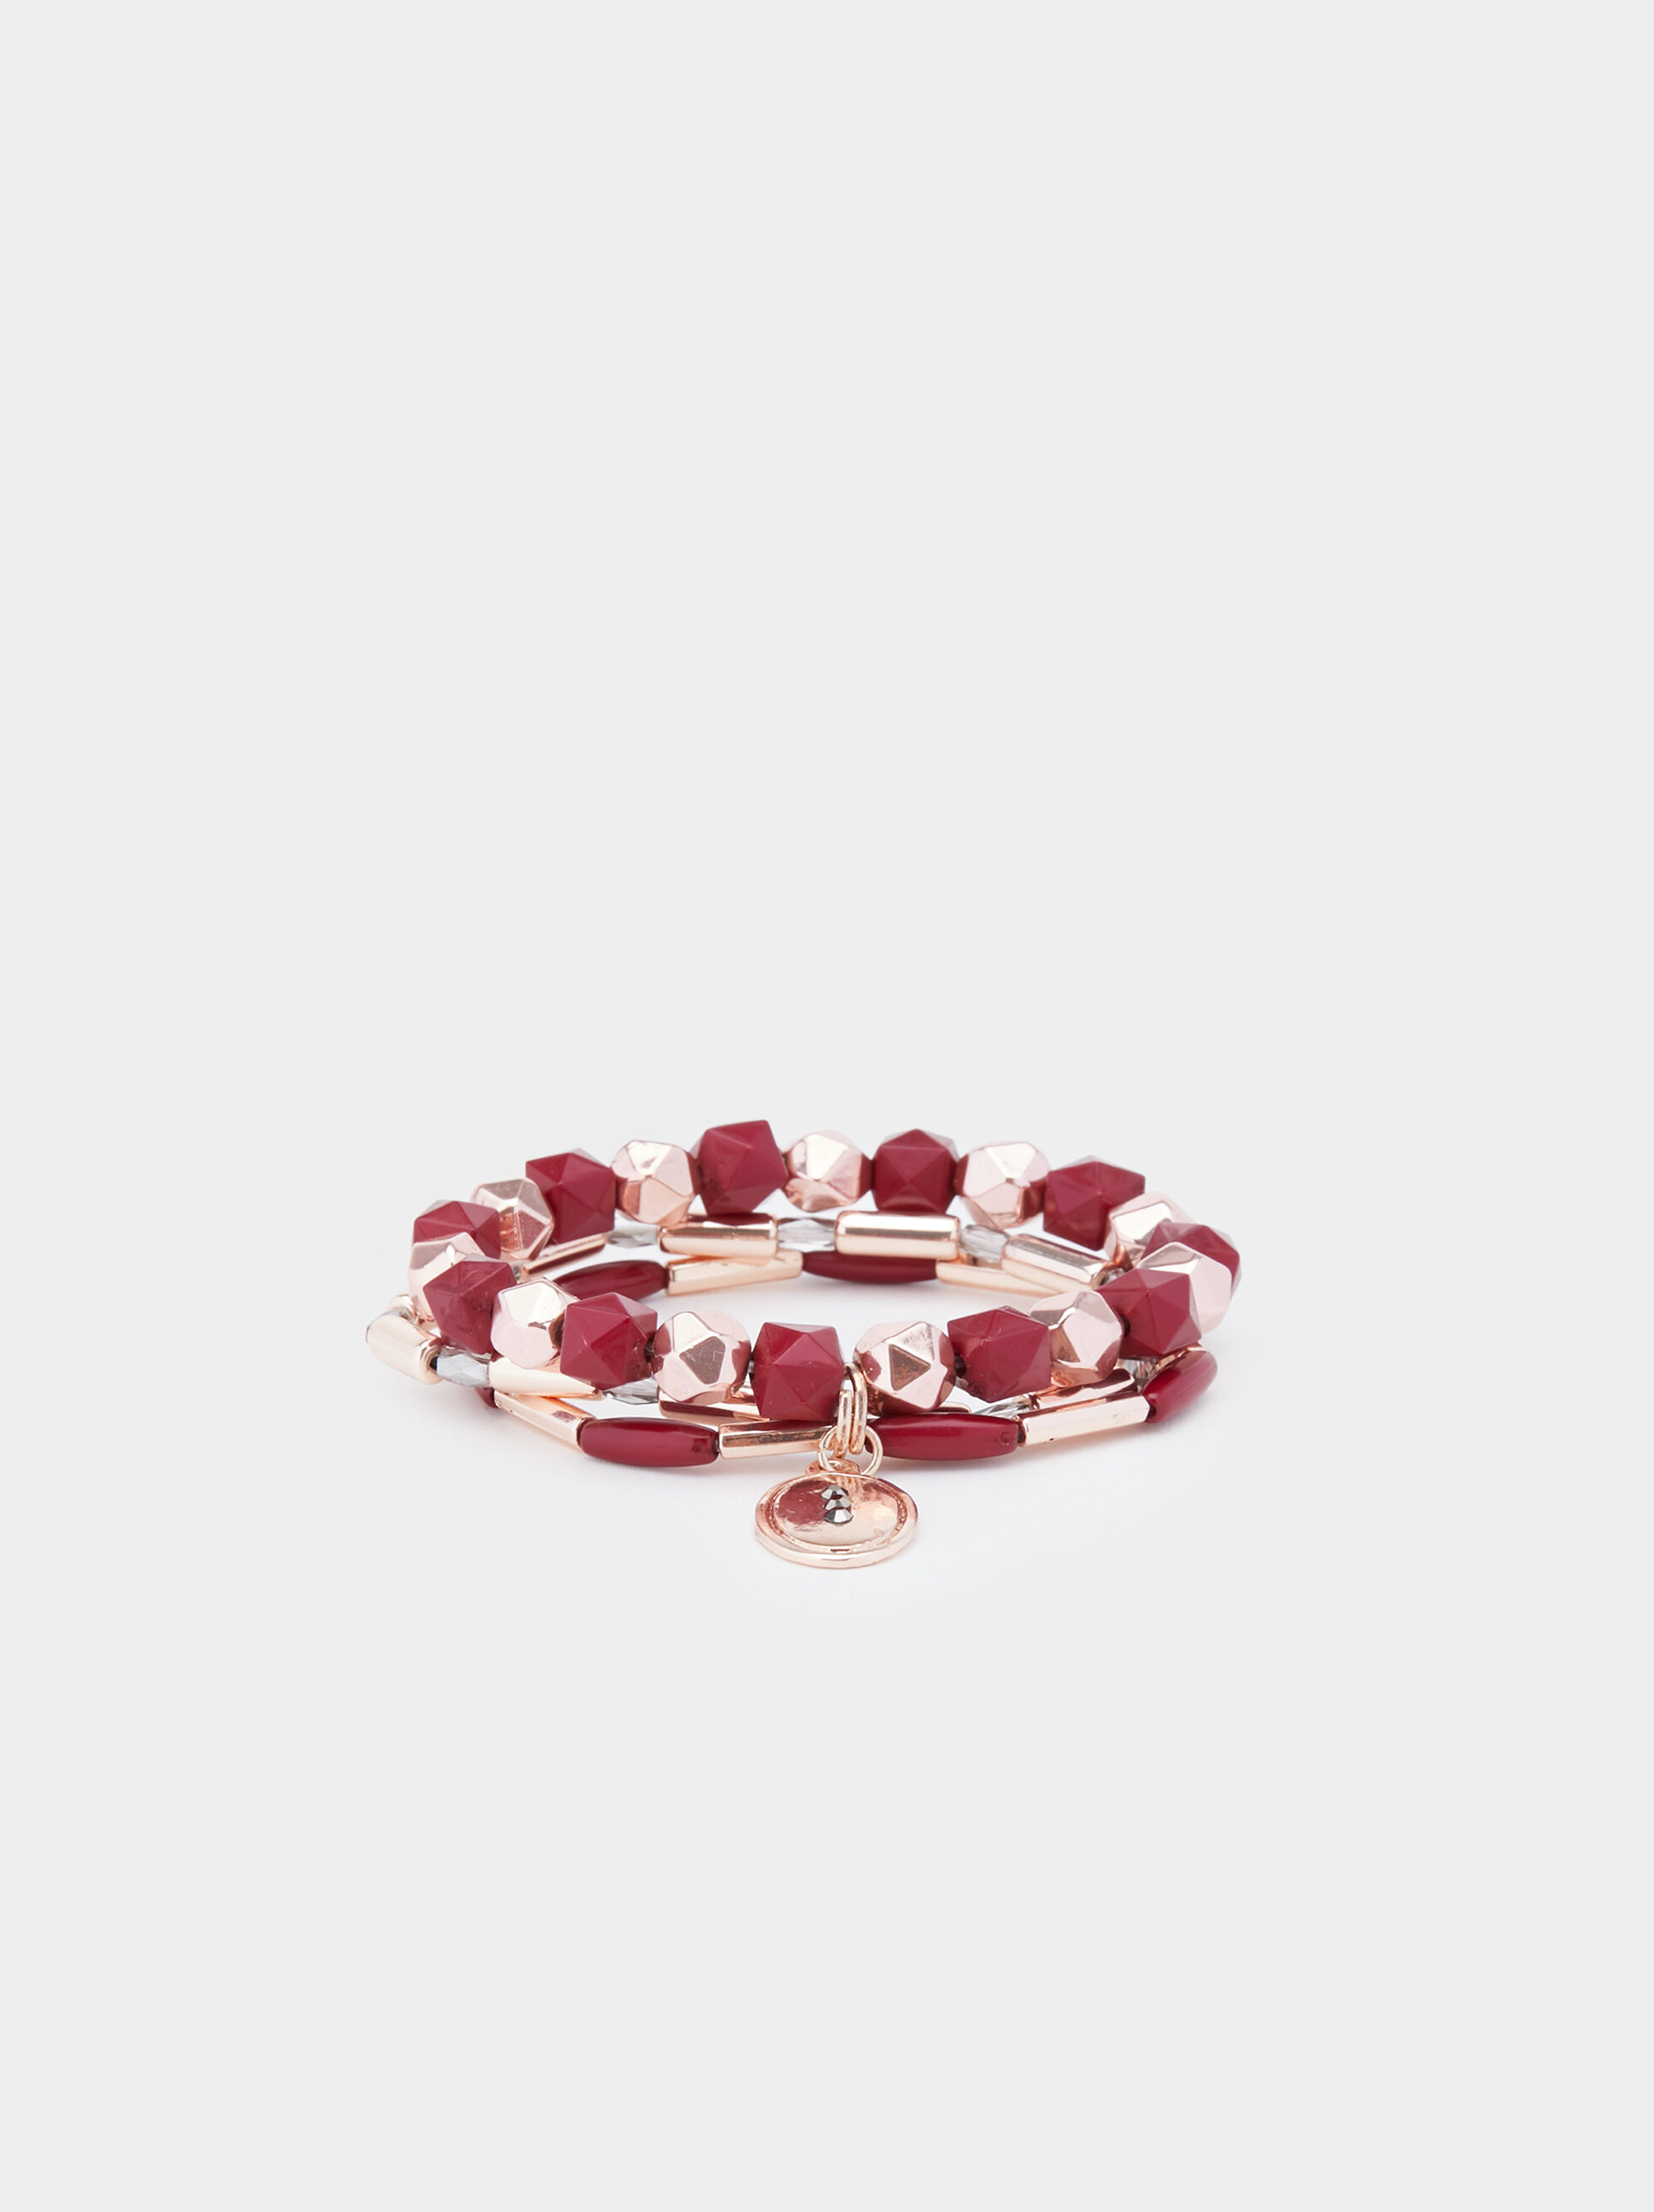 Rose Berry Bracelet, Multicolor, hi-res